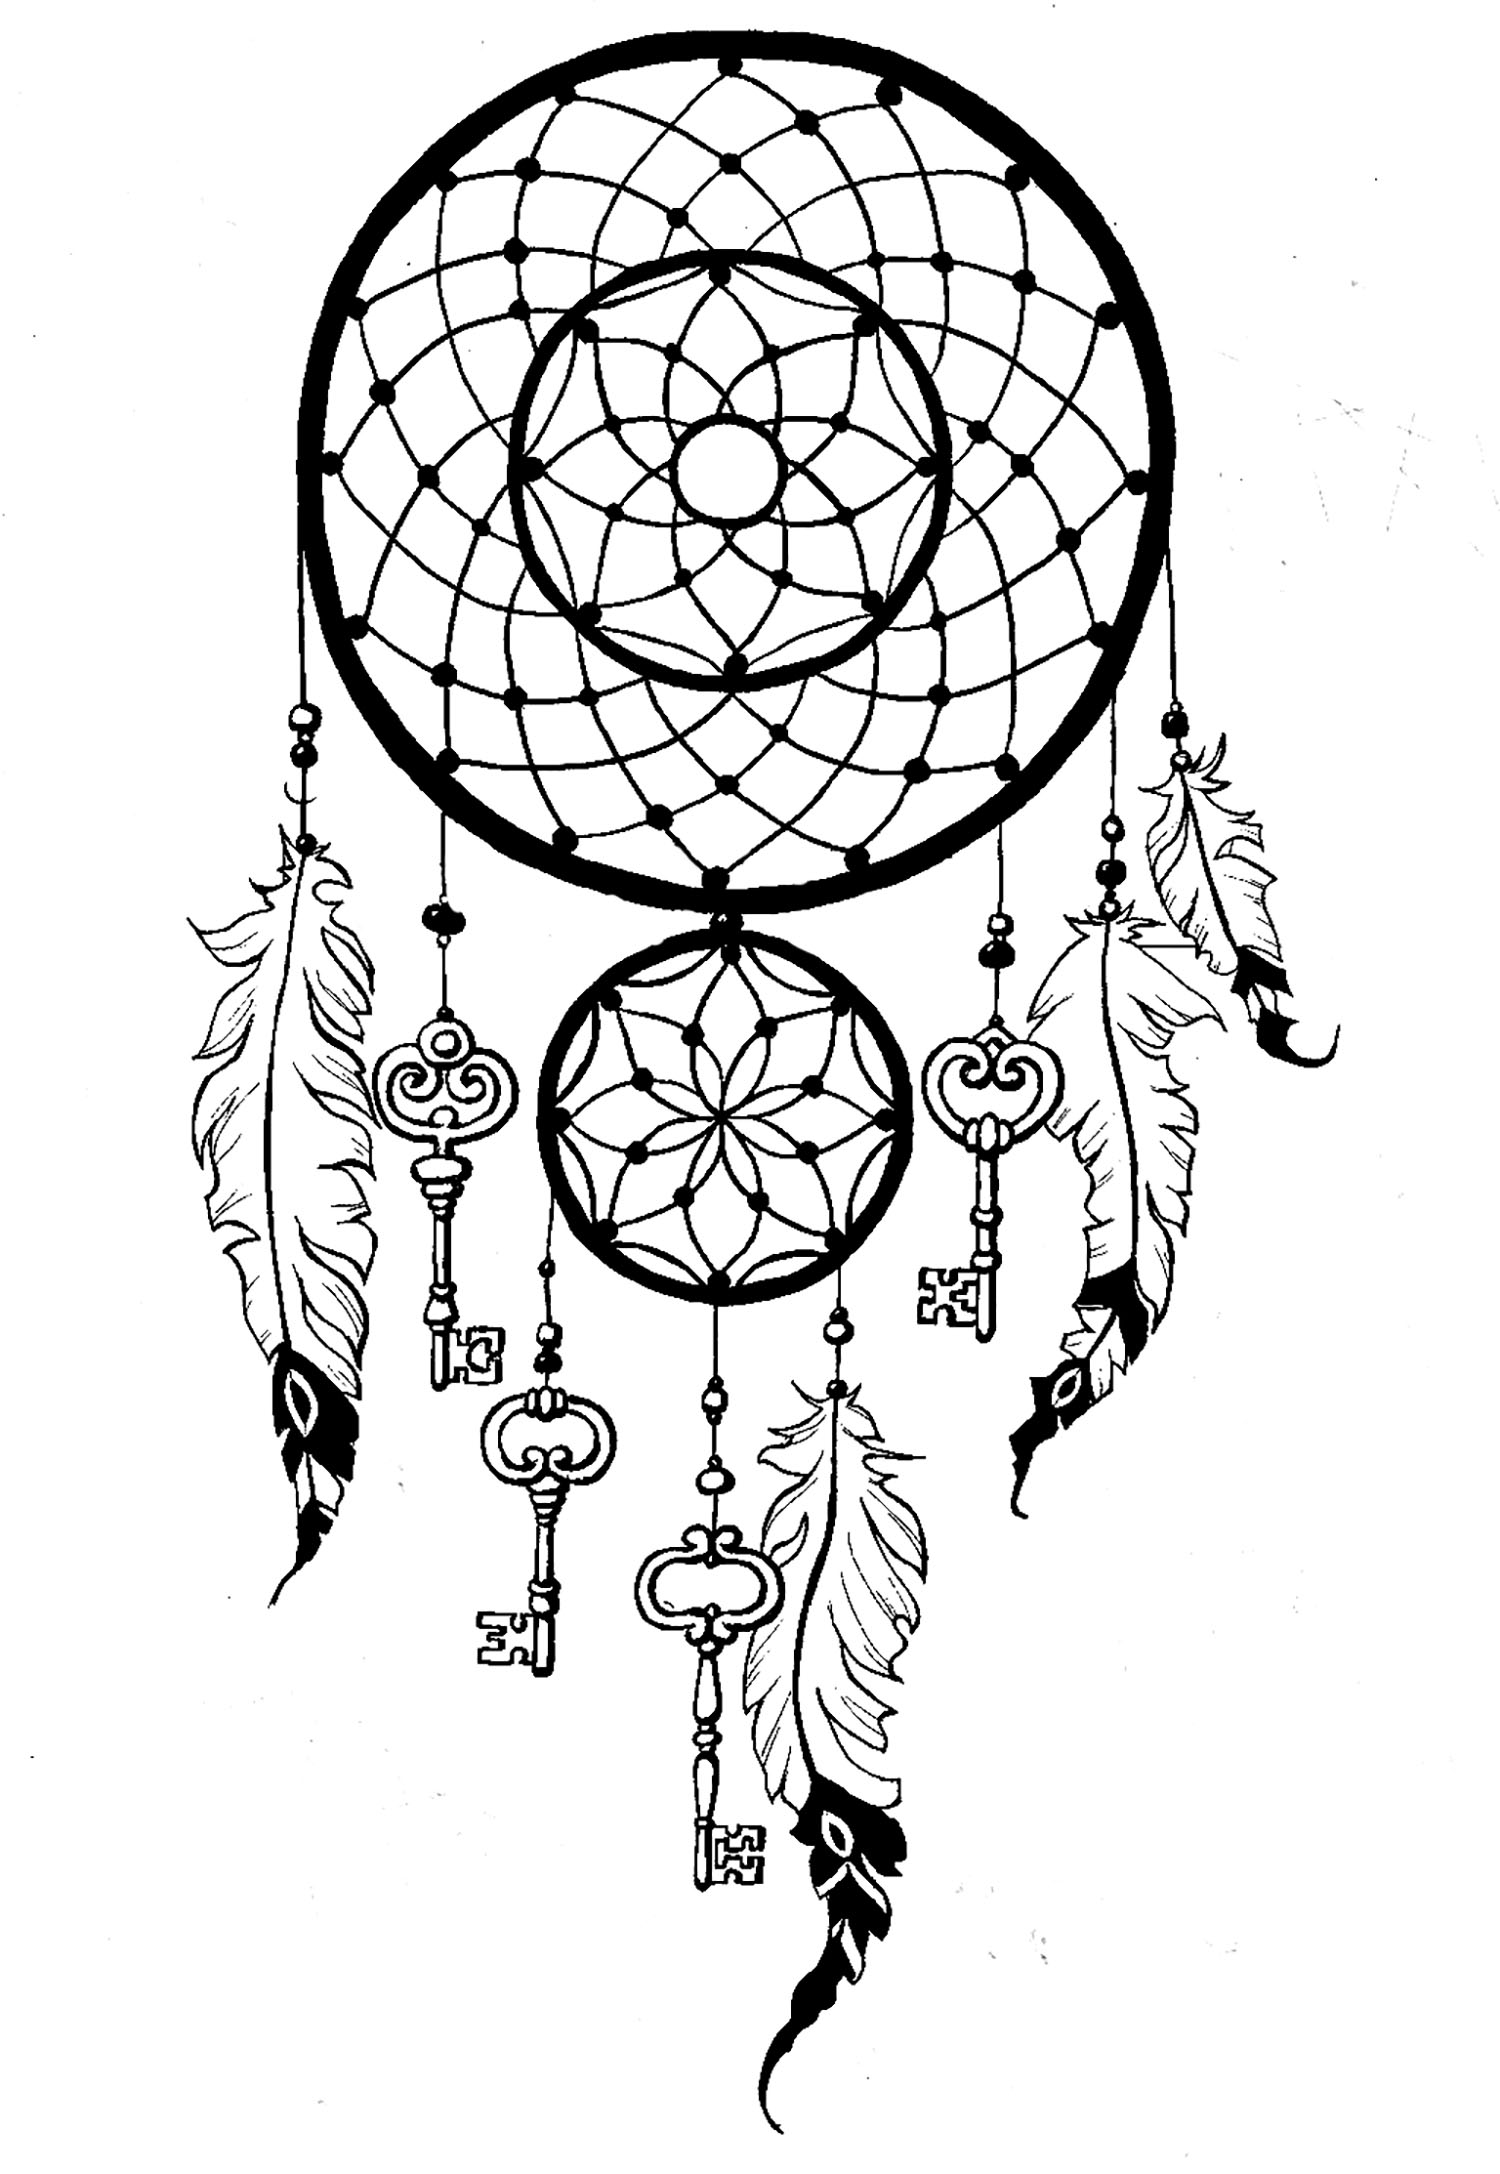 free printable coloring pages for adults zen : Coloring Page Dreamcatcher Keys Free To Print